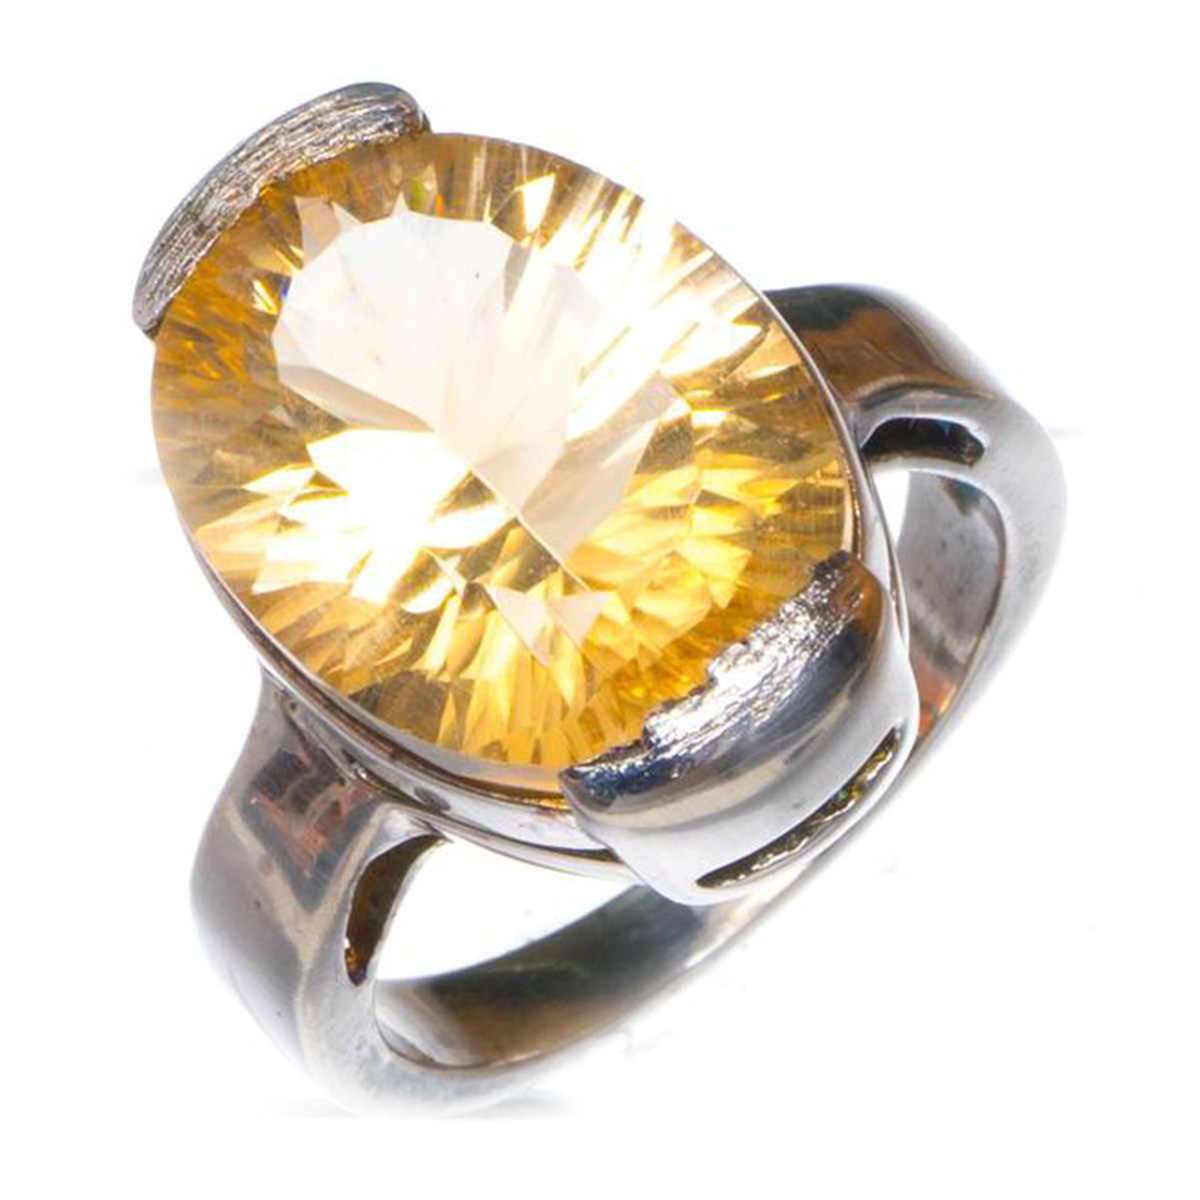 cocktail party ring natural citrine ring oval cut gemstone yellow gemstone sterling silver ring